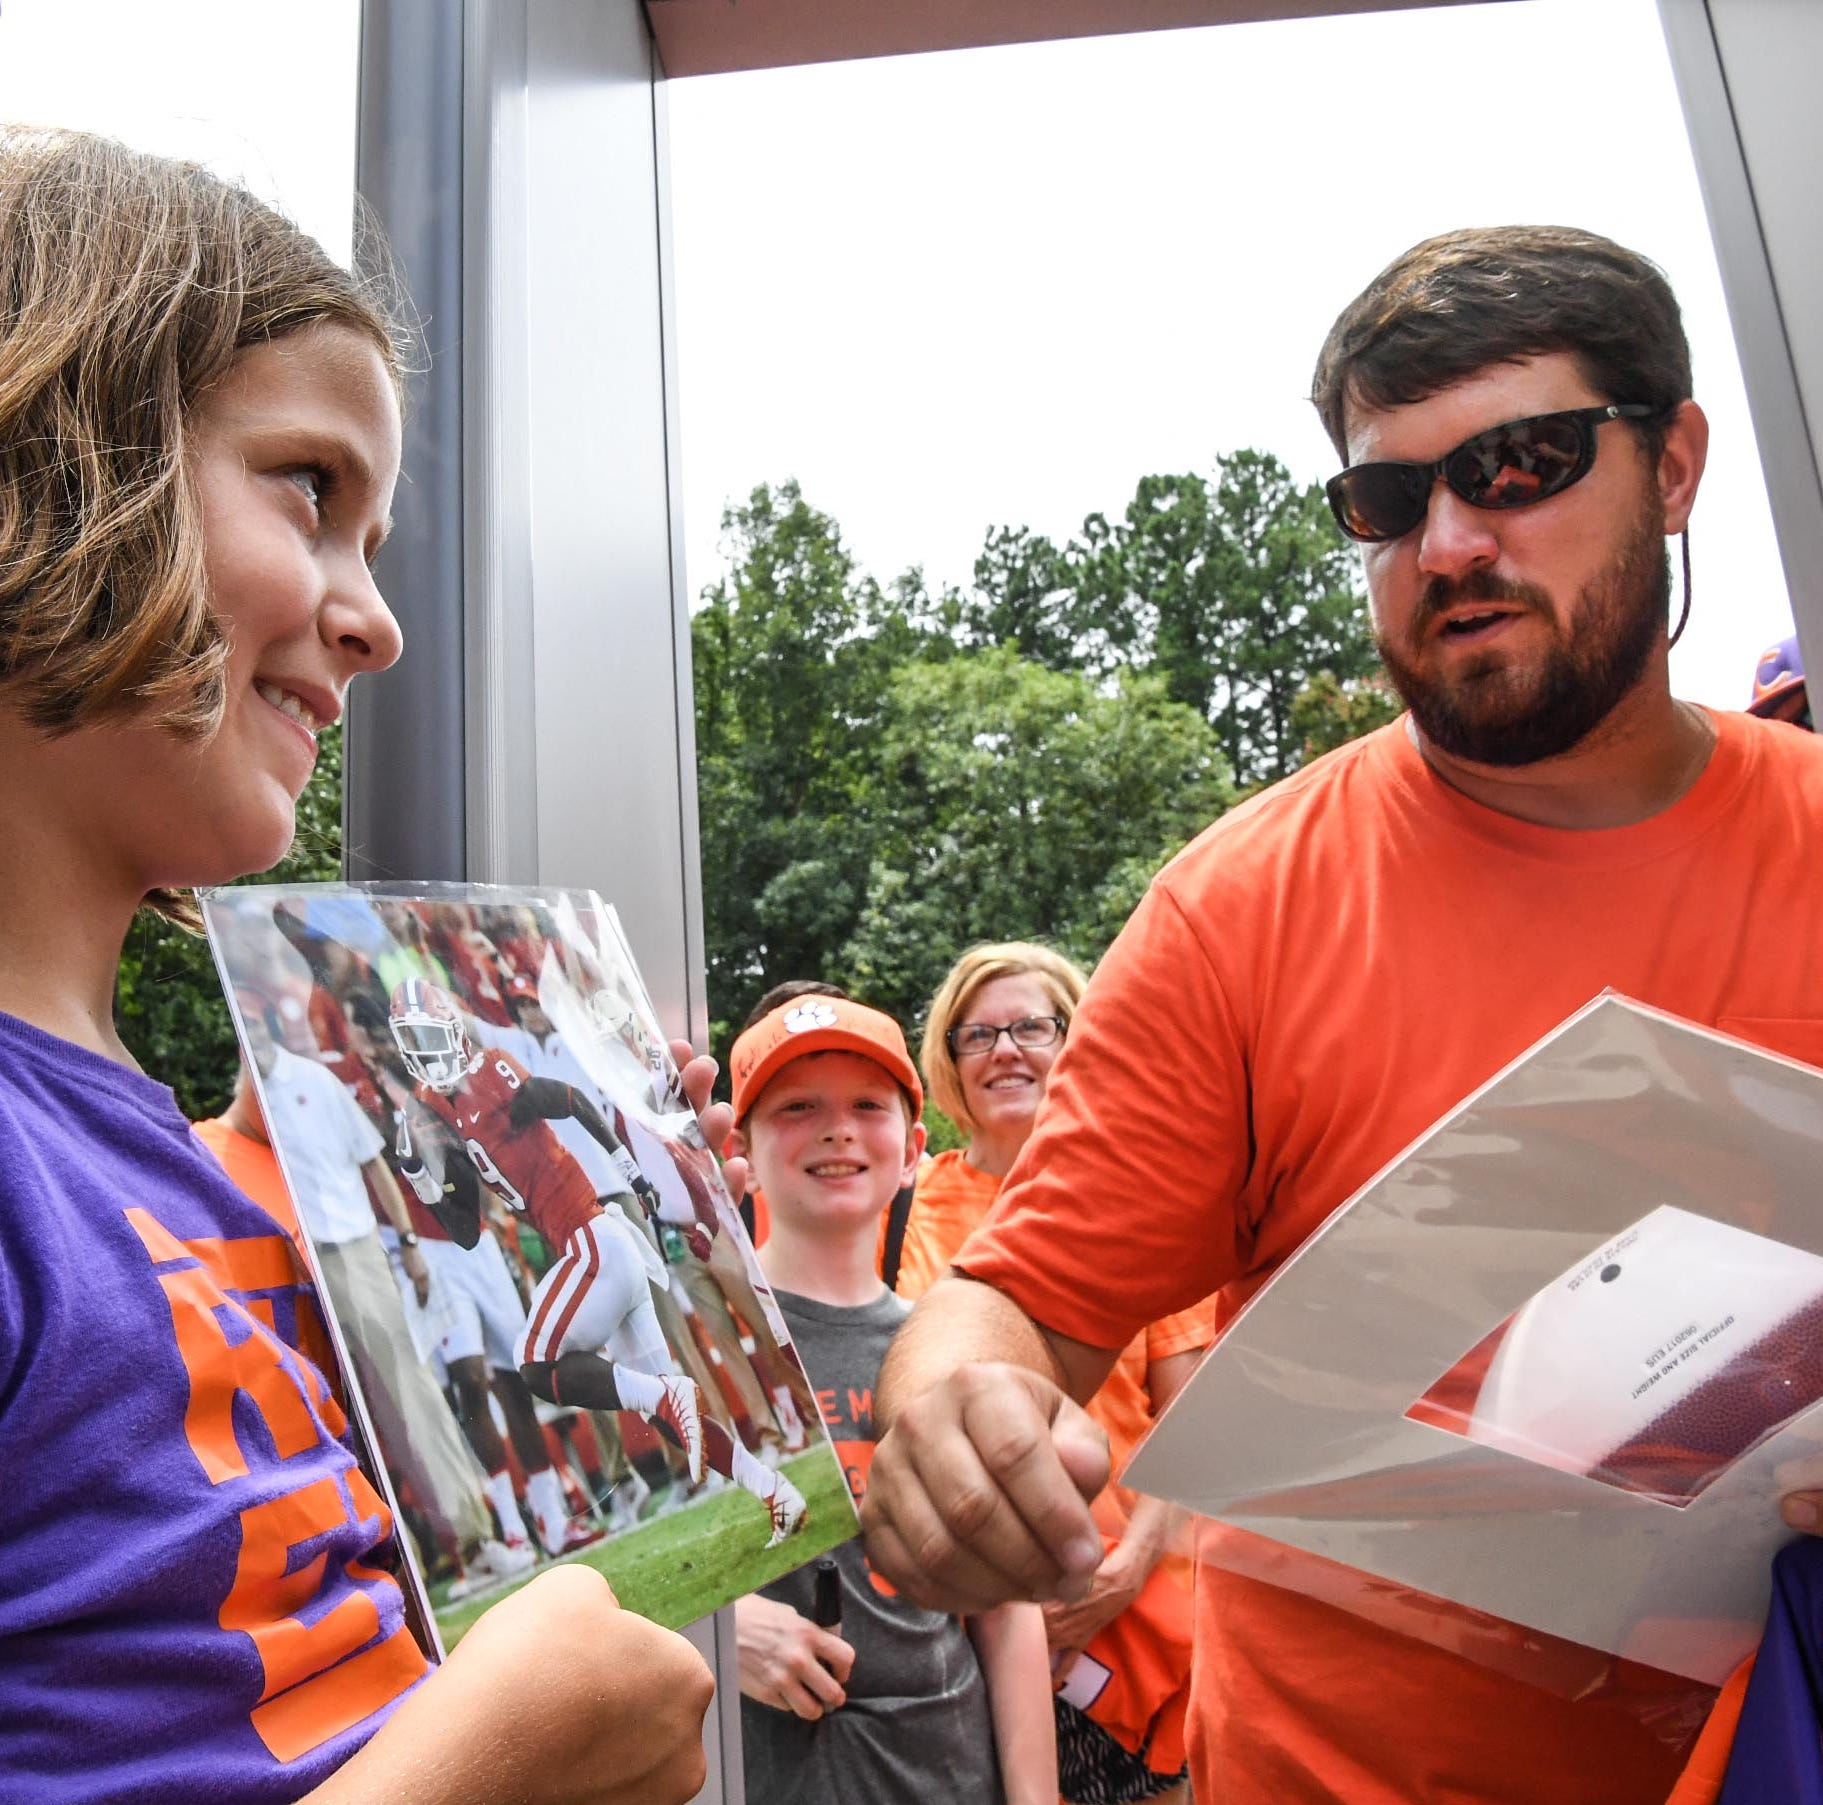 Fan Day provides bonding experience for Clemson football-loving families